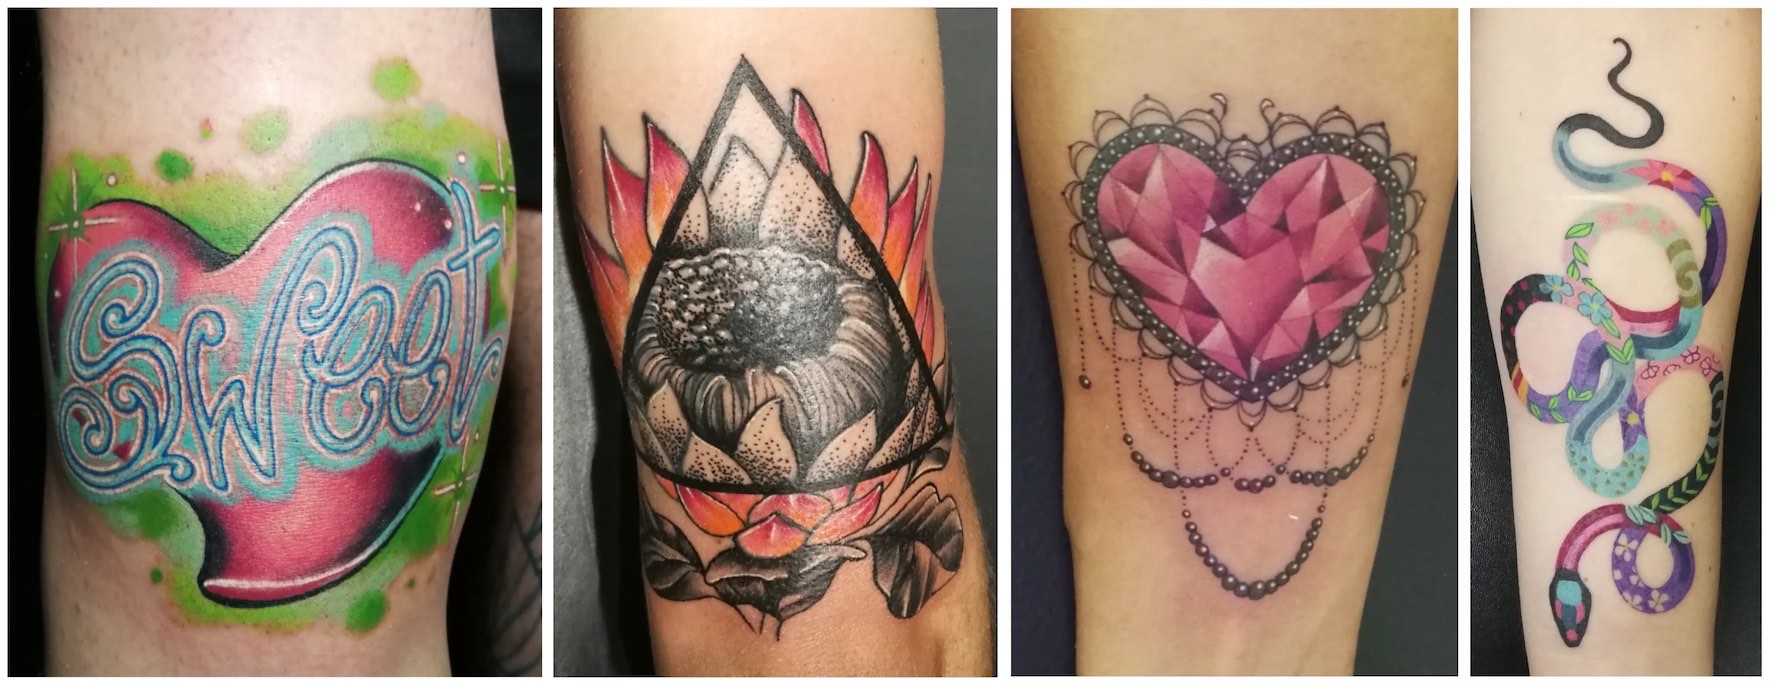 A selection of tattoos done by Chelsea-Rae Marsh